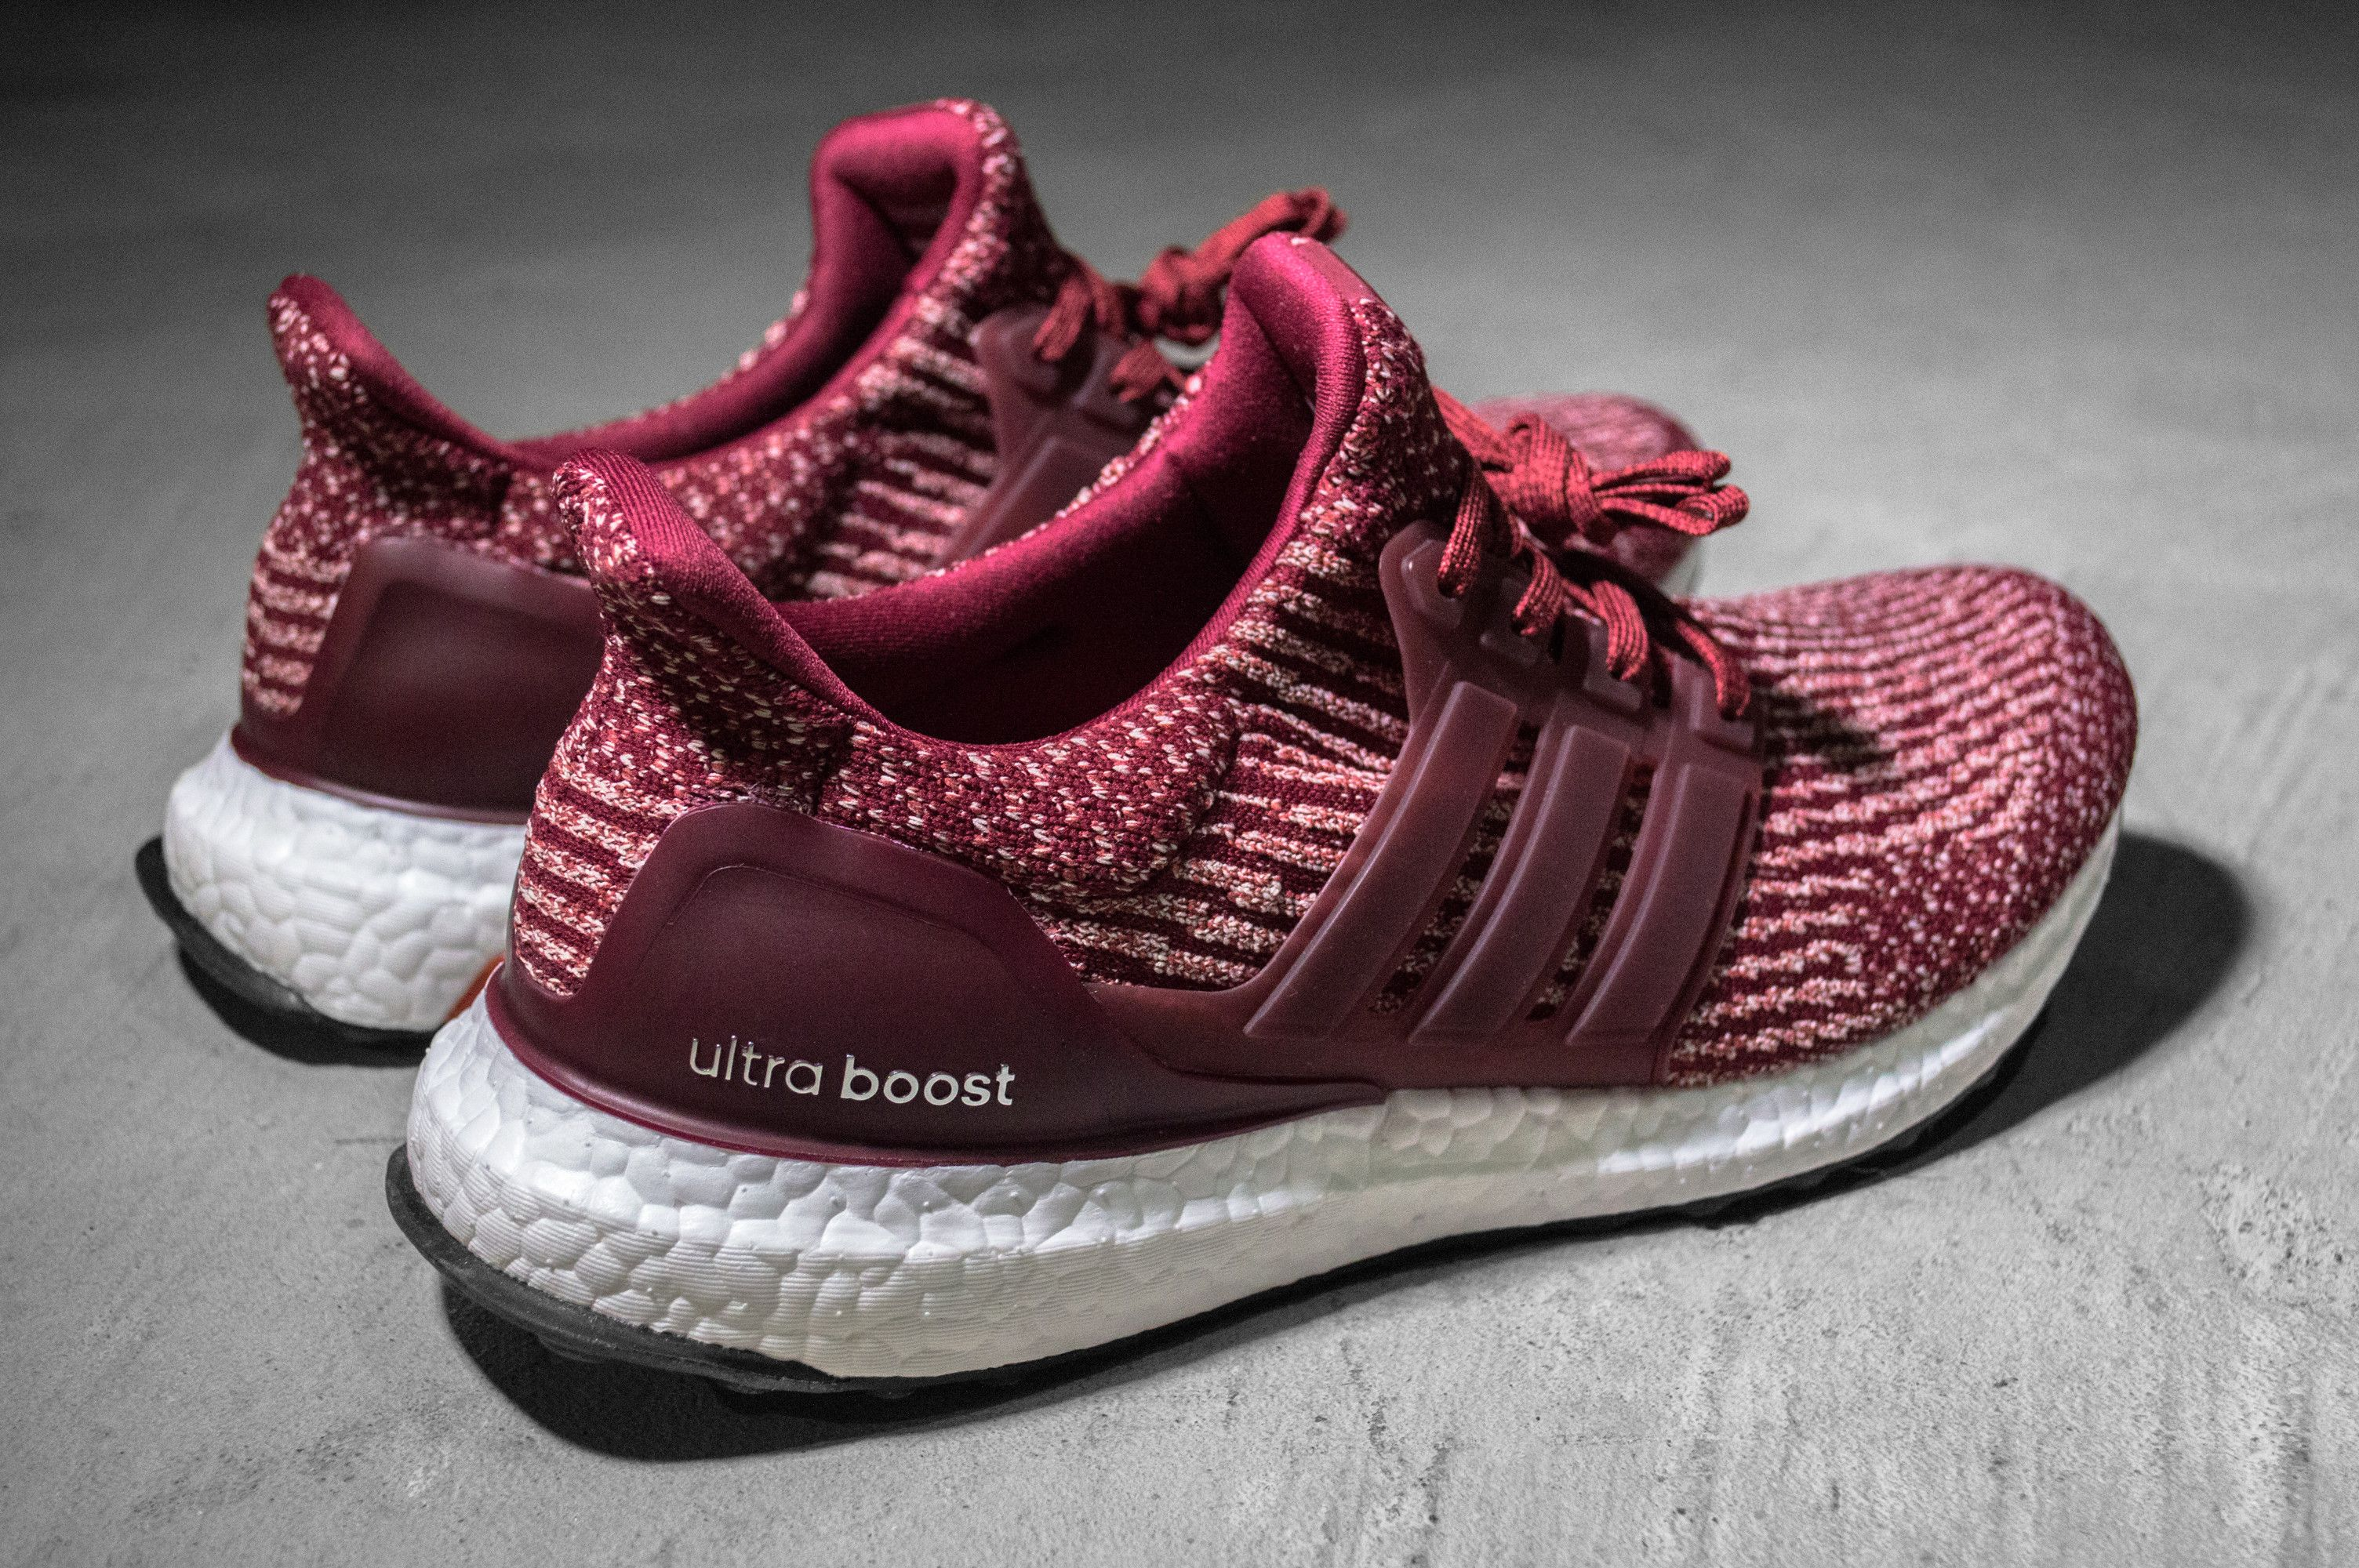 ground beef 3.0 ultraboost 3.0 burgundy